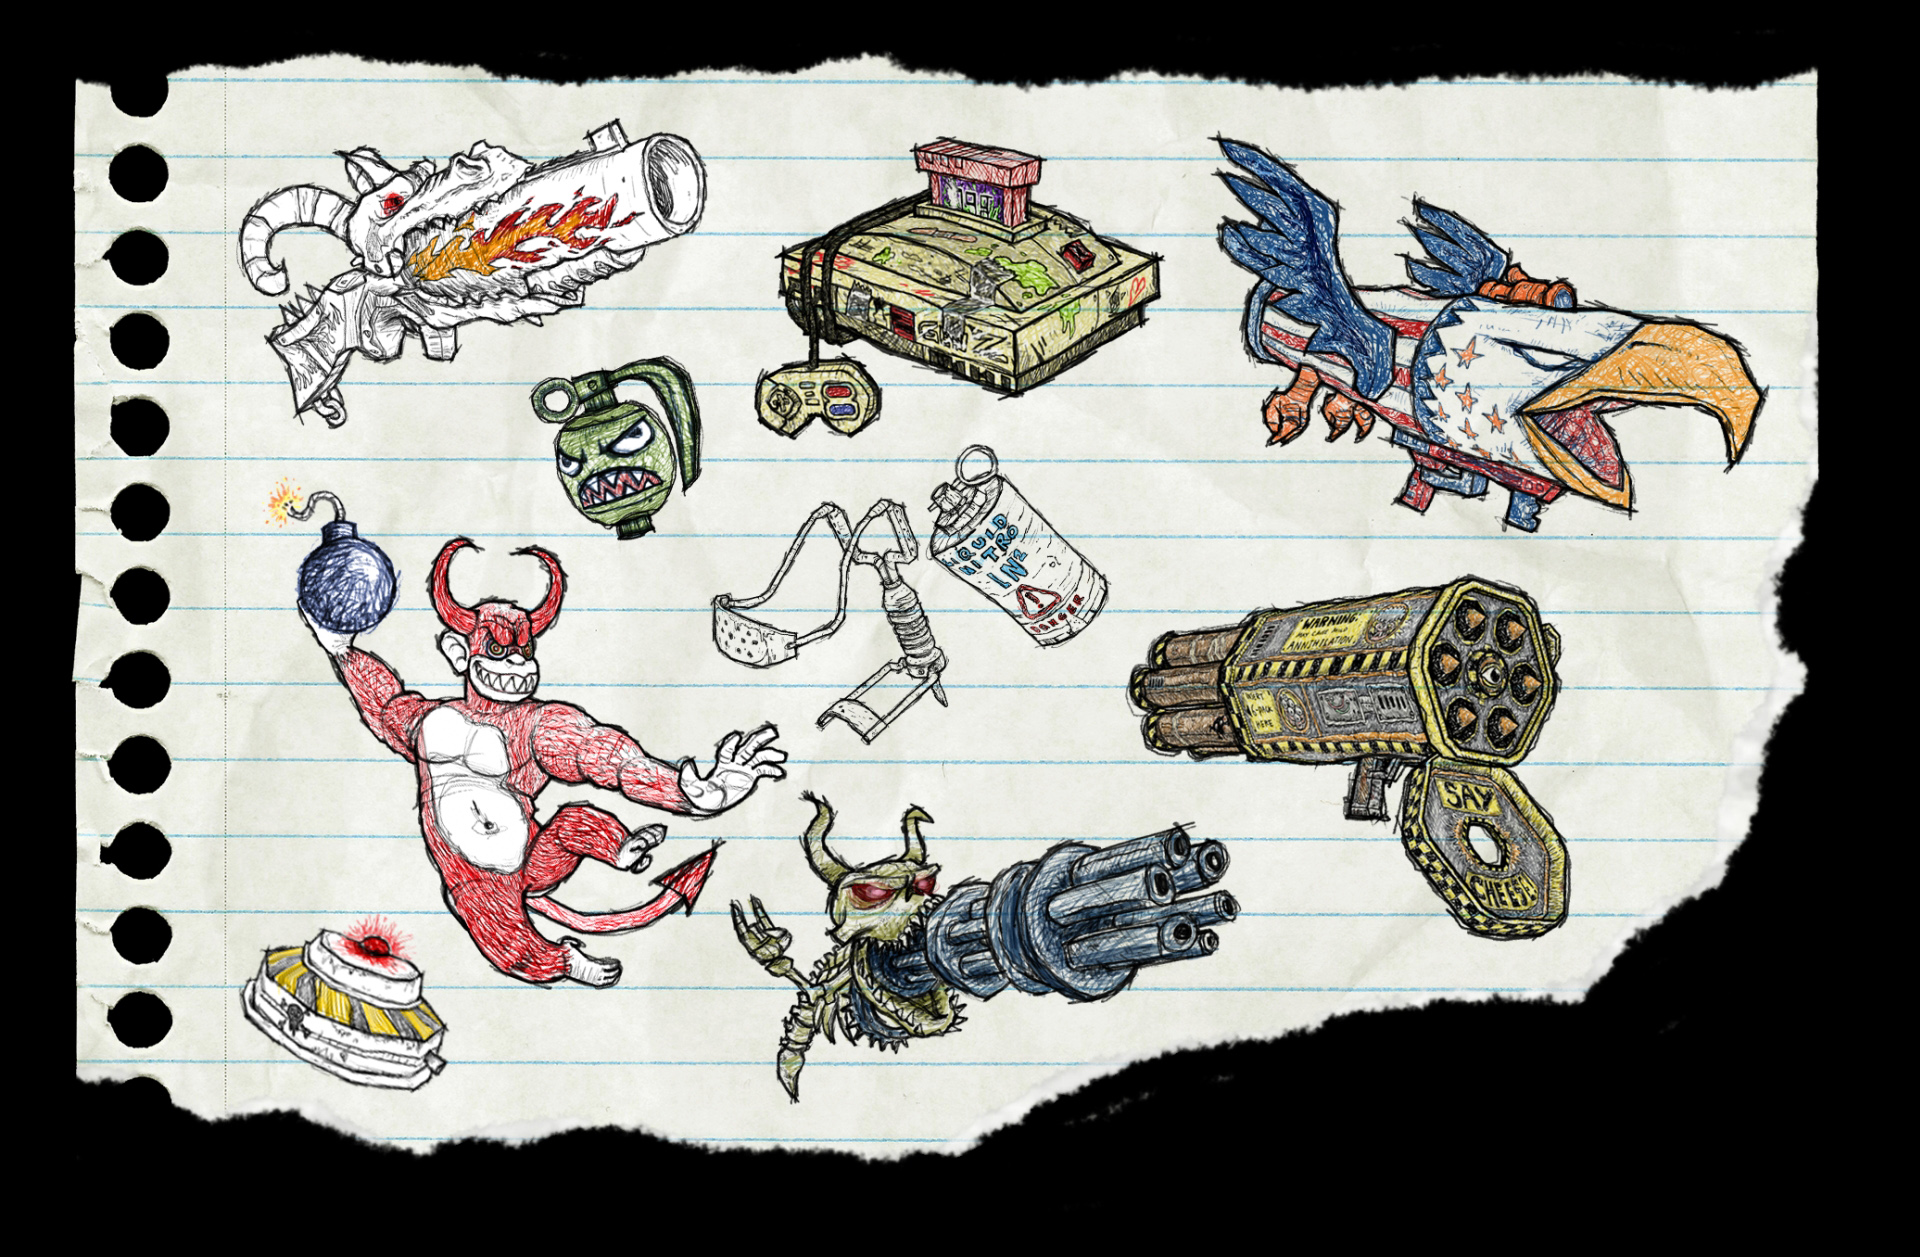 Drawn weapon wepon Death  Drawn Weapons To